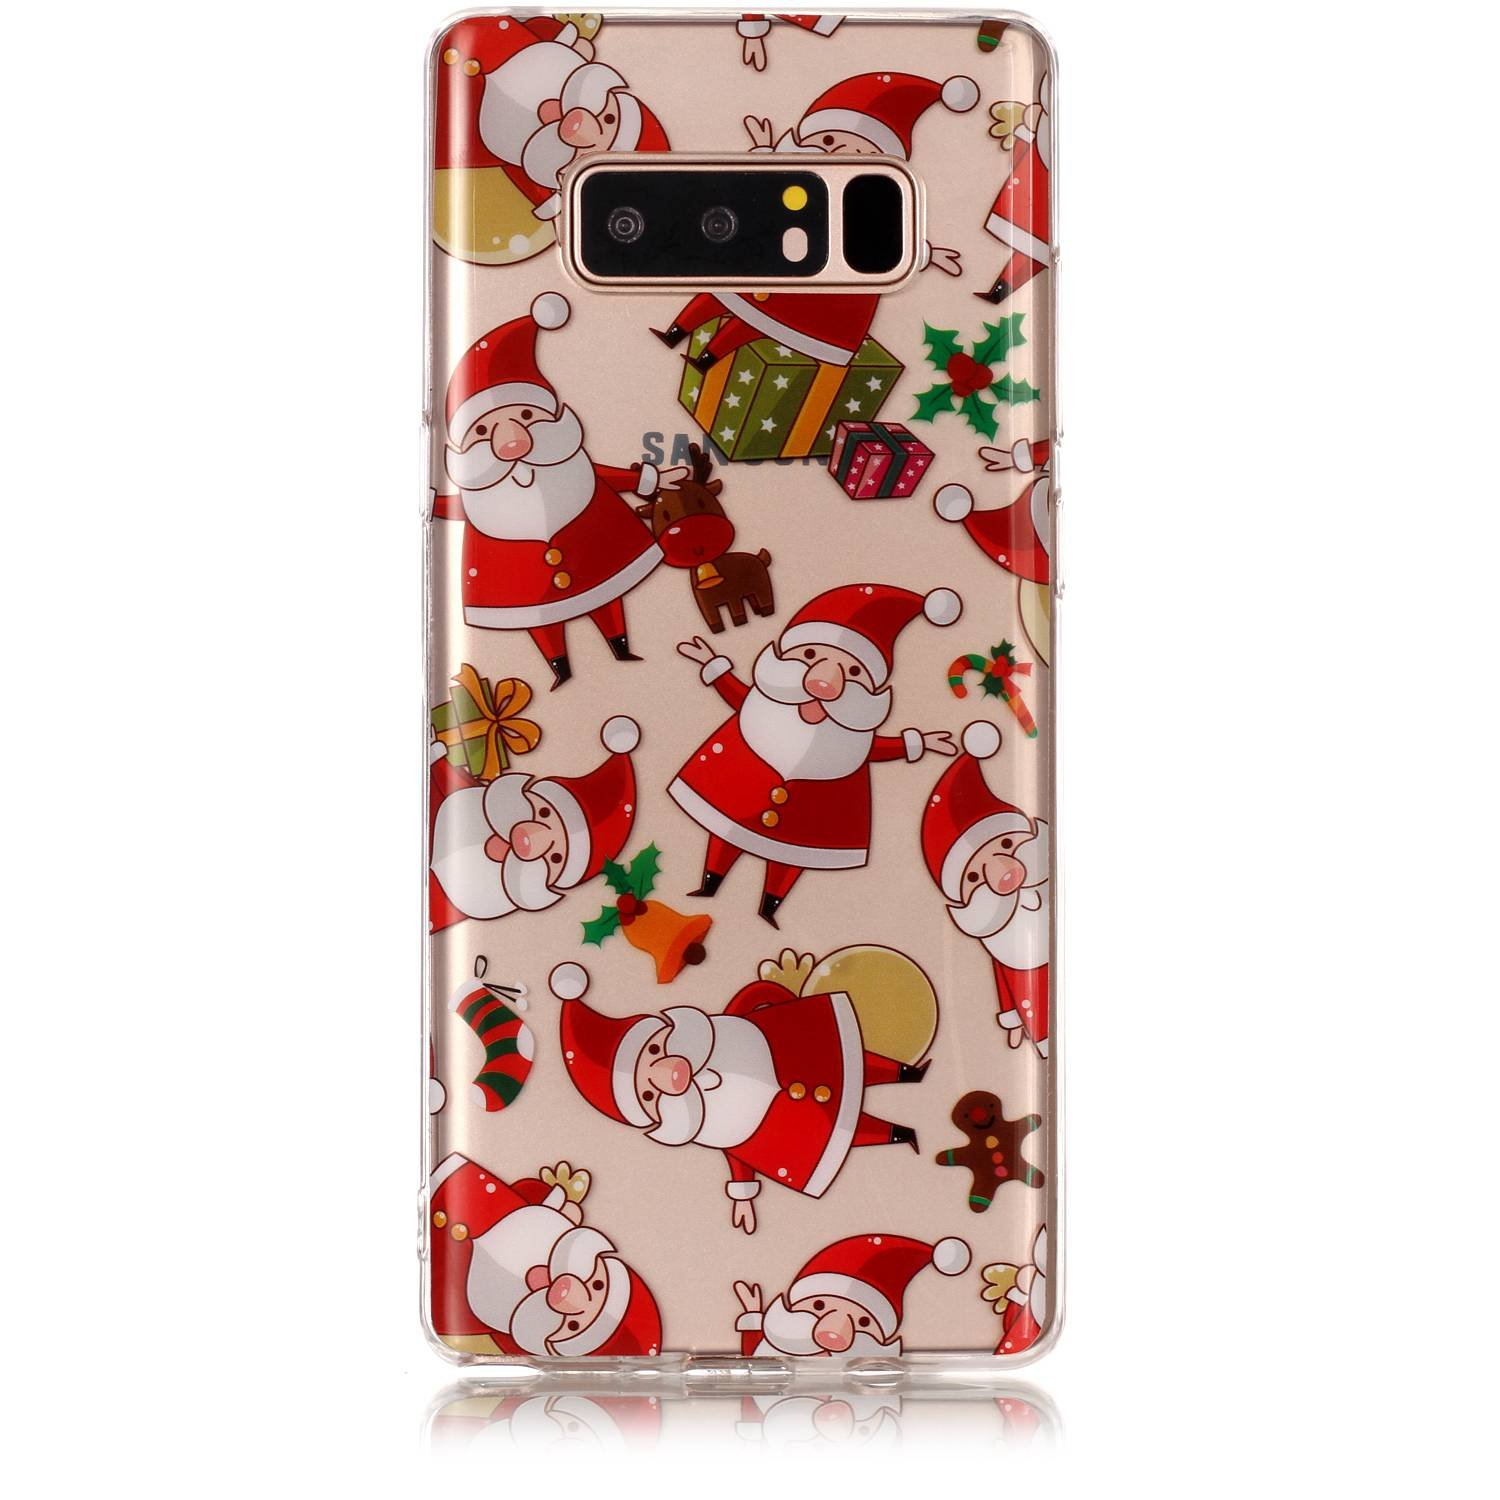 Jewby Galaxy Note 8 Case, Vivid Cute Xmas Case for Samsung Galaxy Note 8 with a Free Screen Protector YHS8P1016B